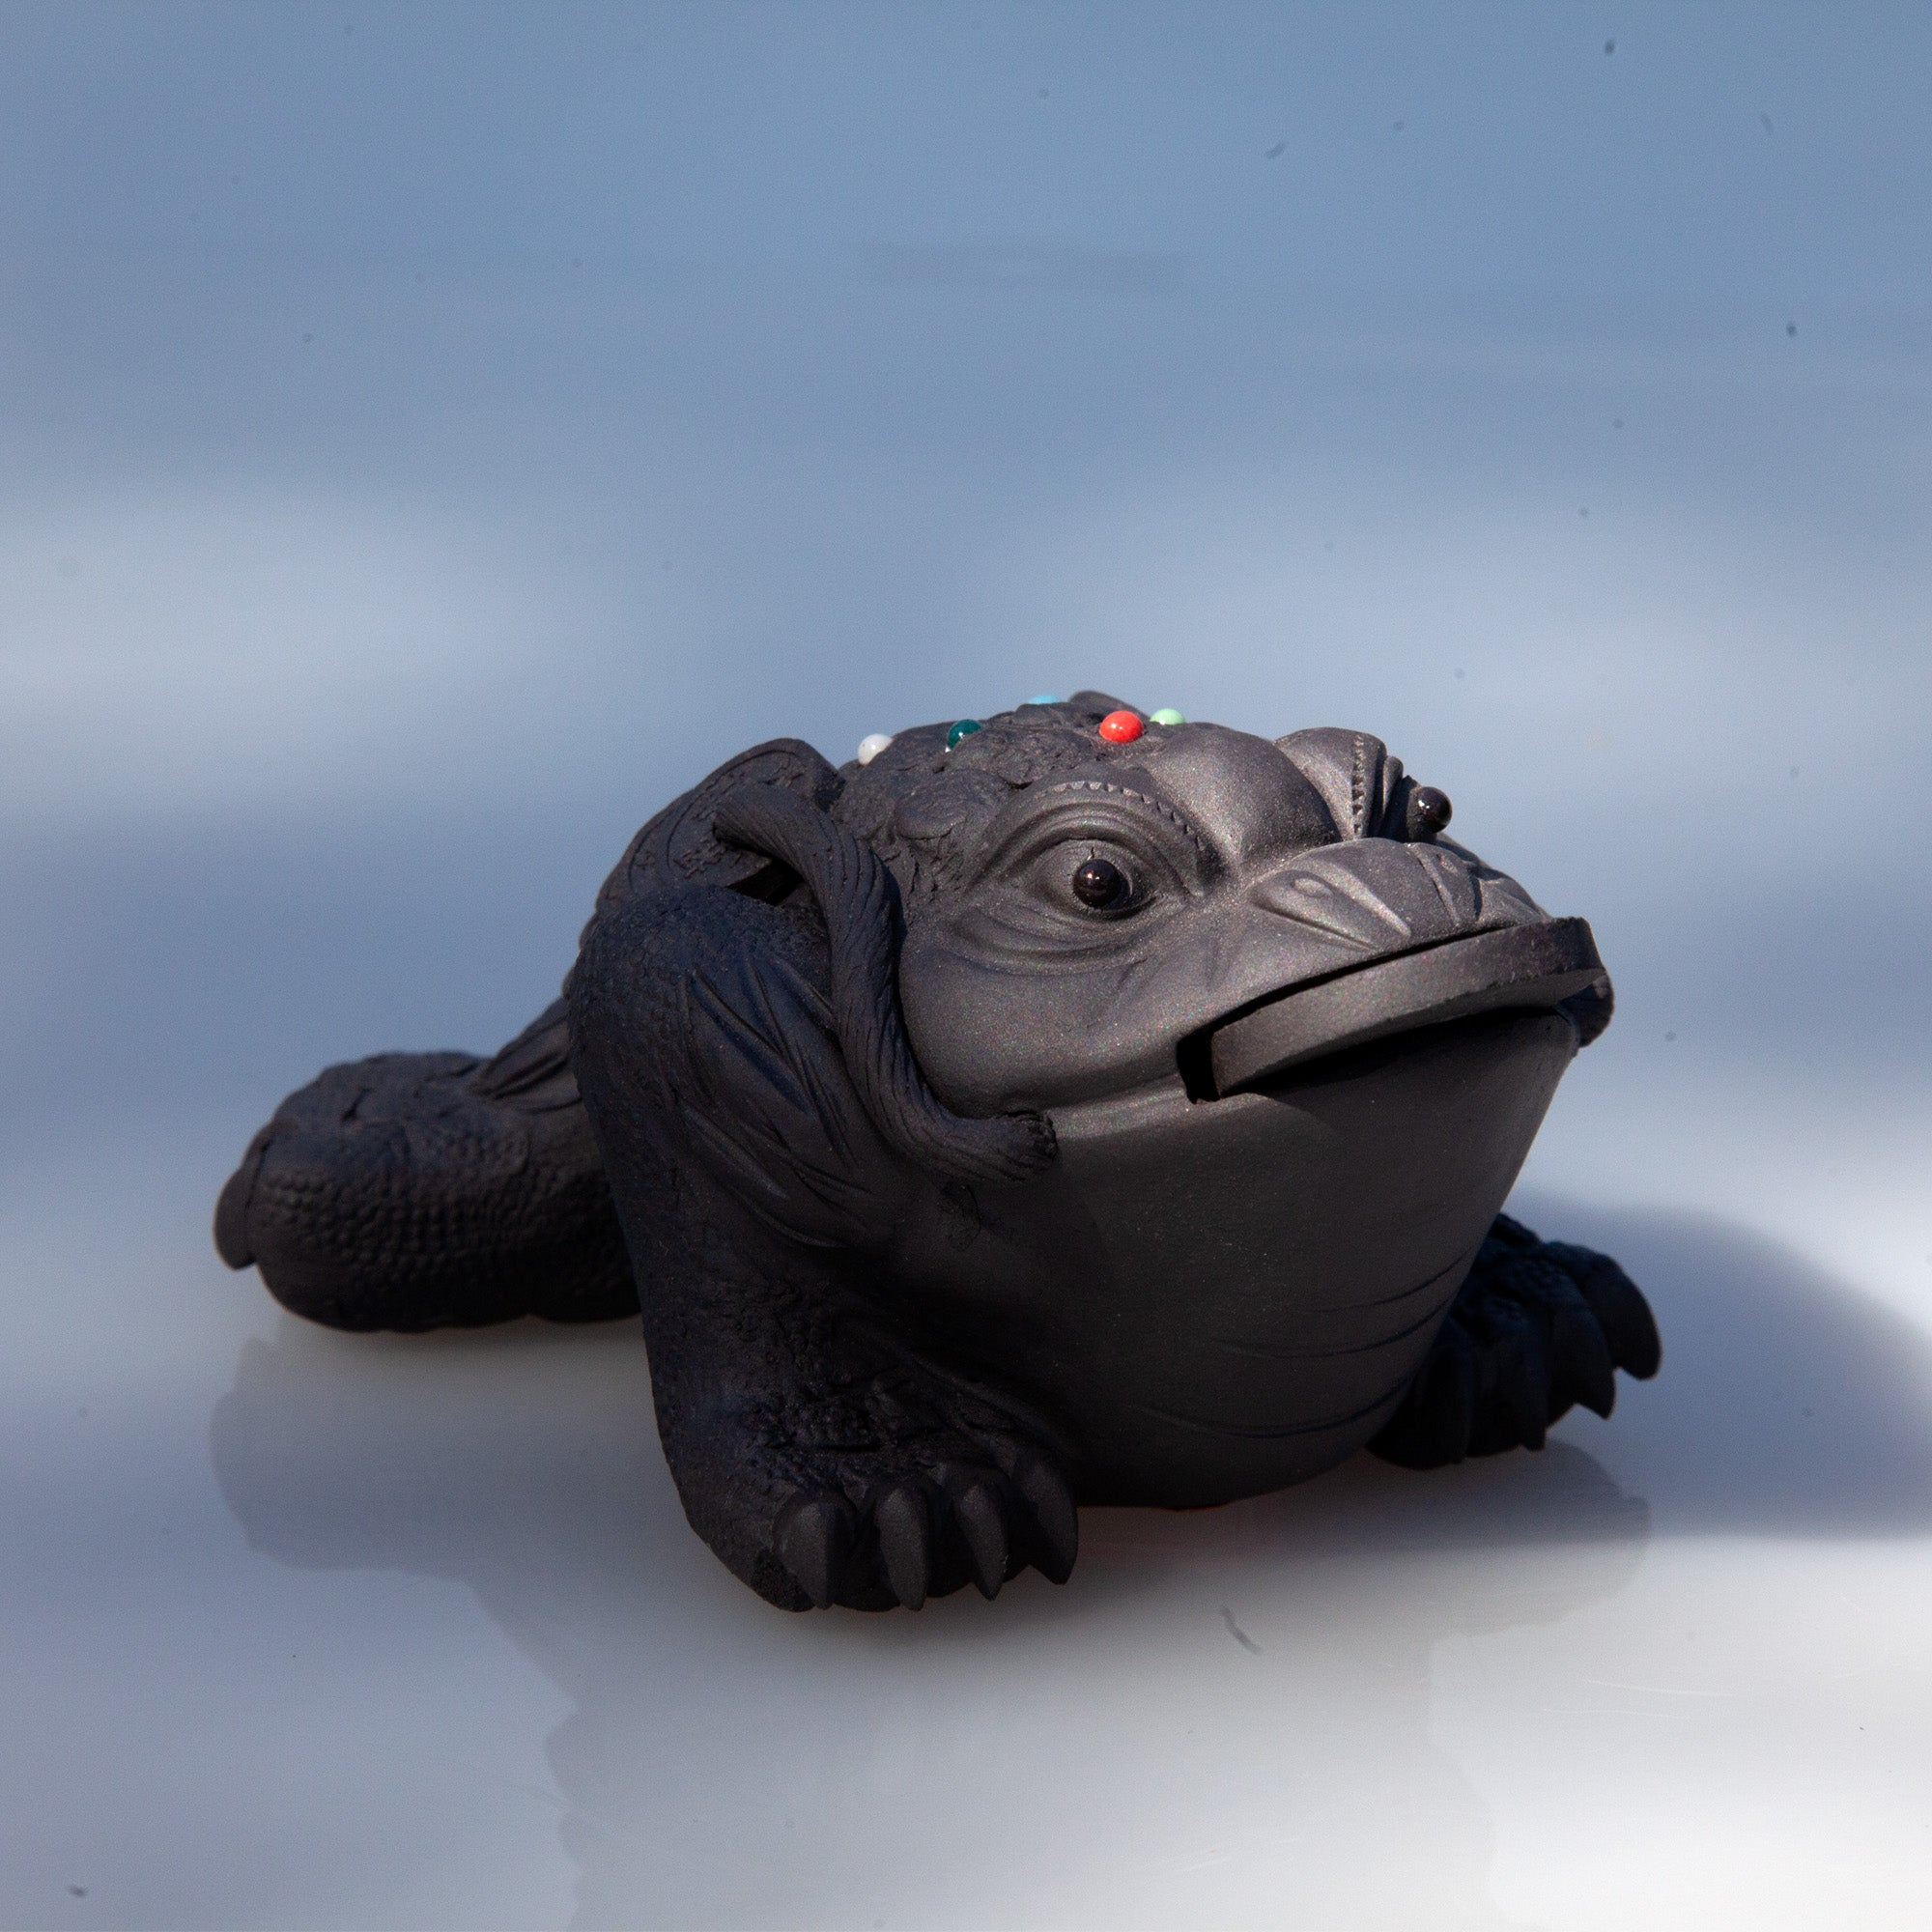 Tea Pet - Toad